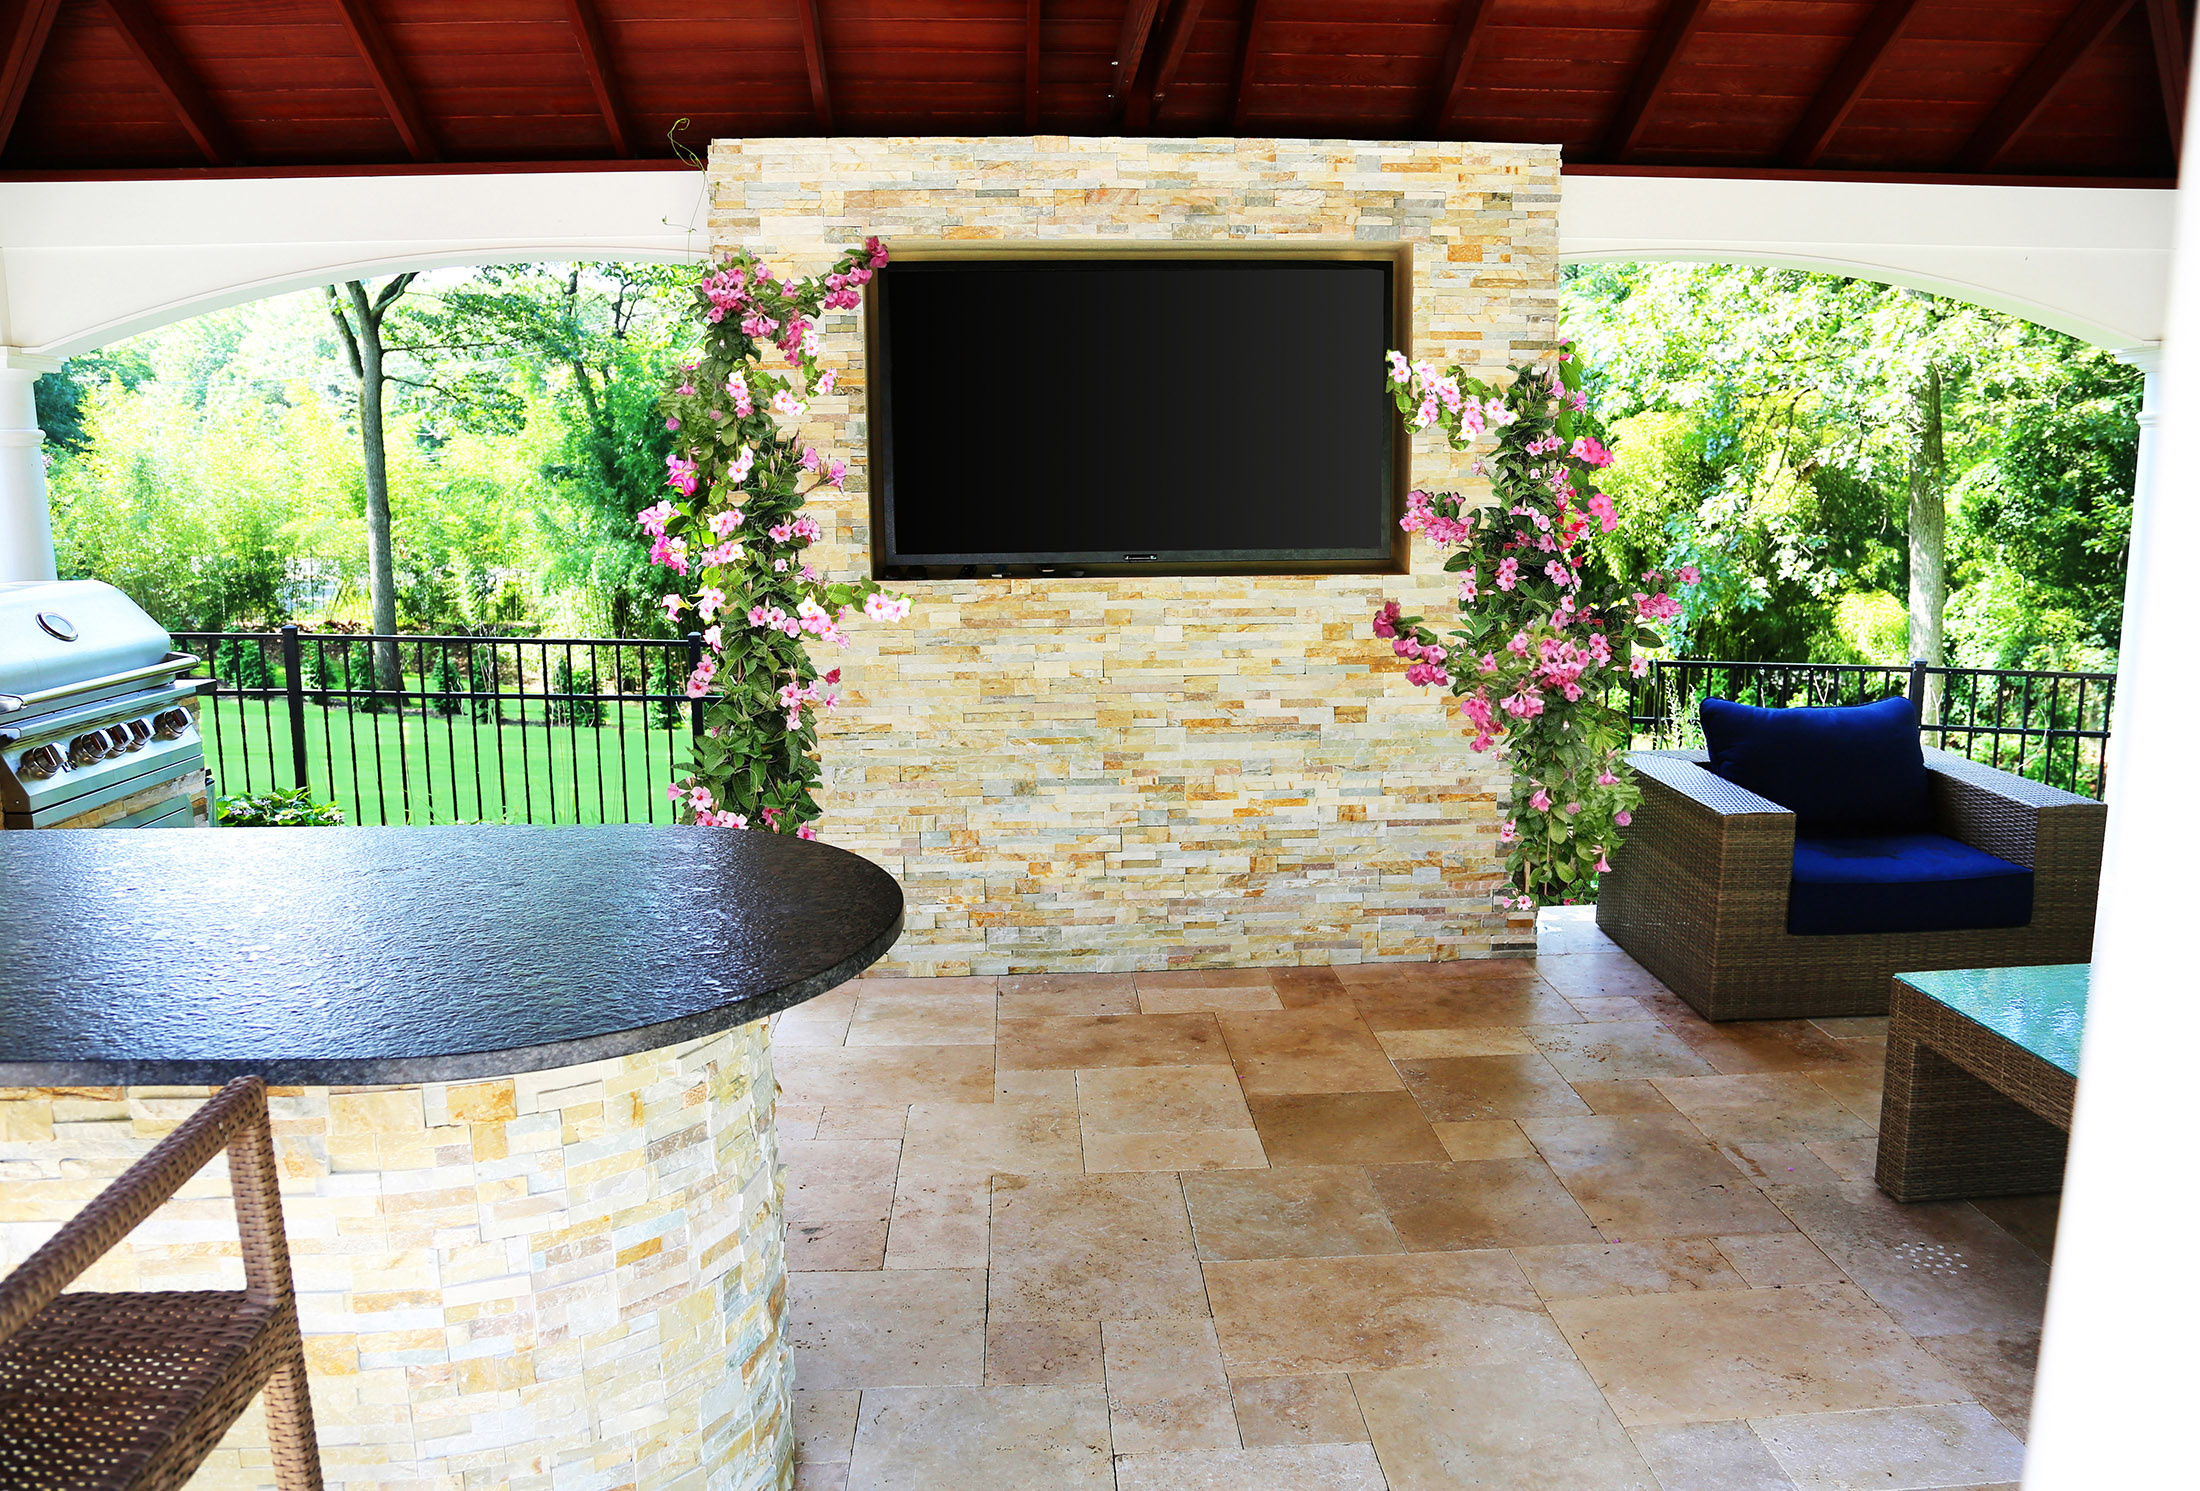 Outdoor kitchen and outdoor TV with grill, wet bar and custom stone patio in Smithtown